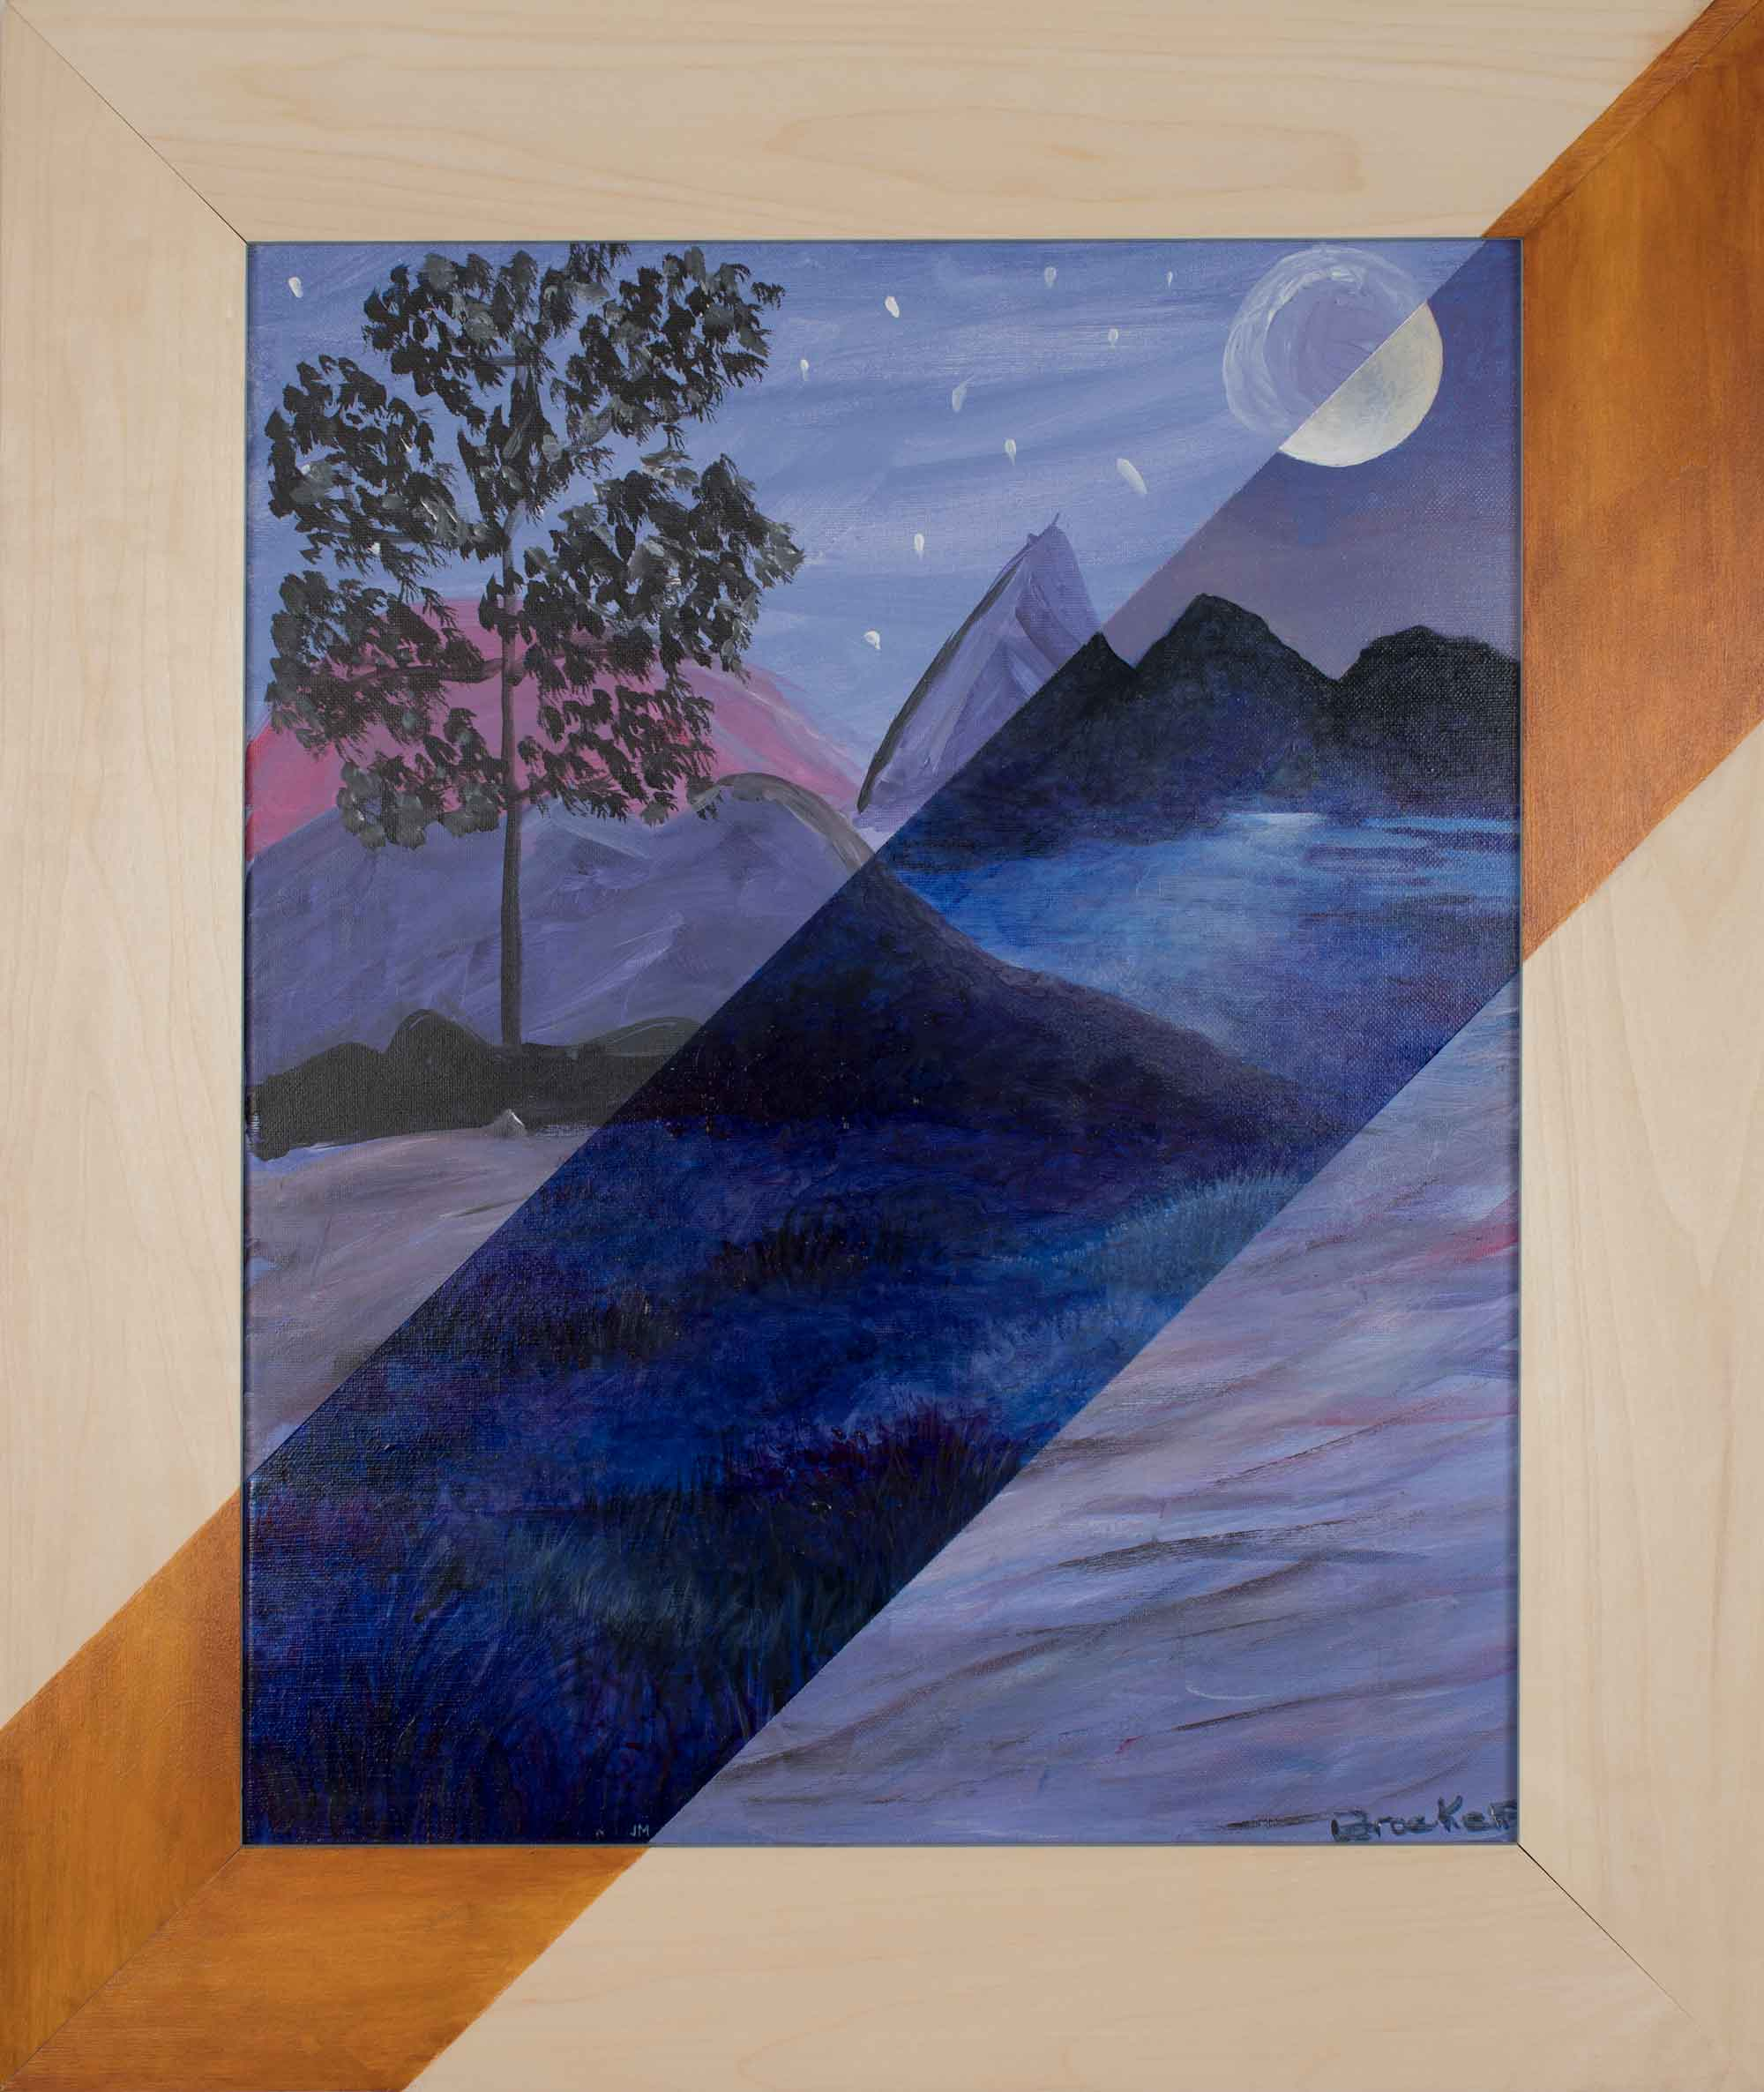 Night Mountains / Brooke P